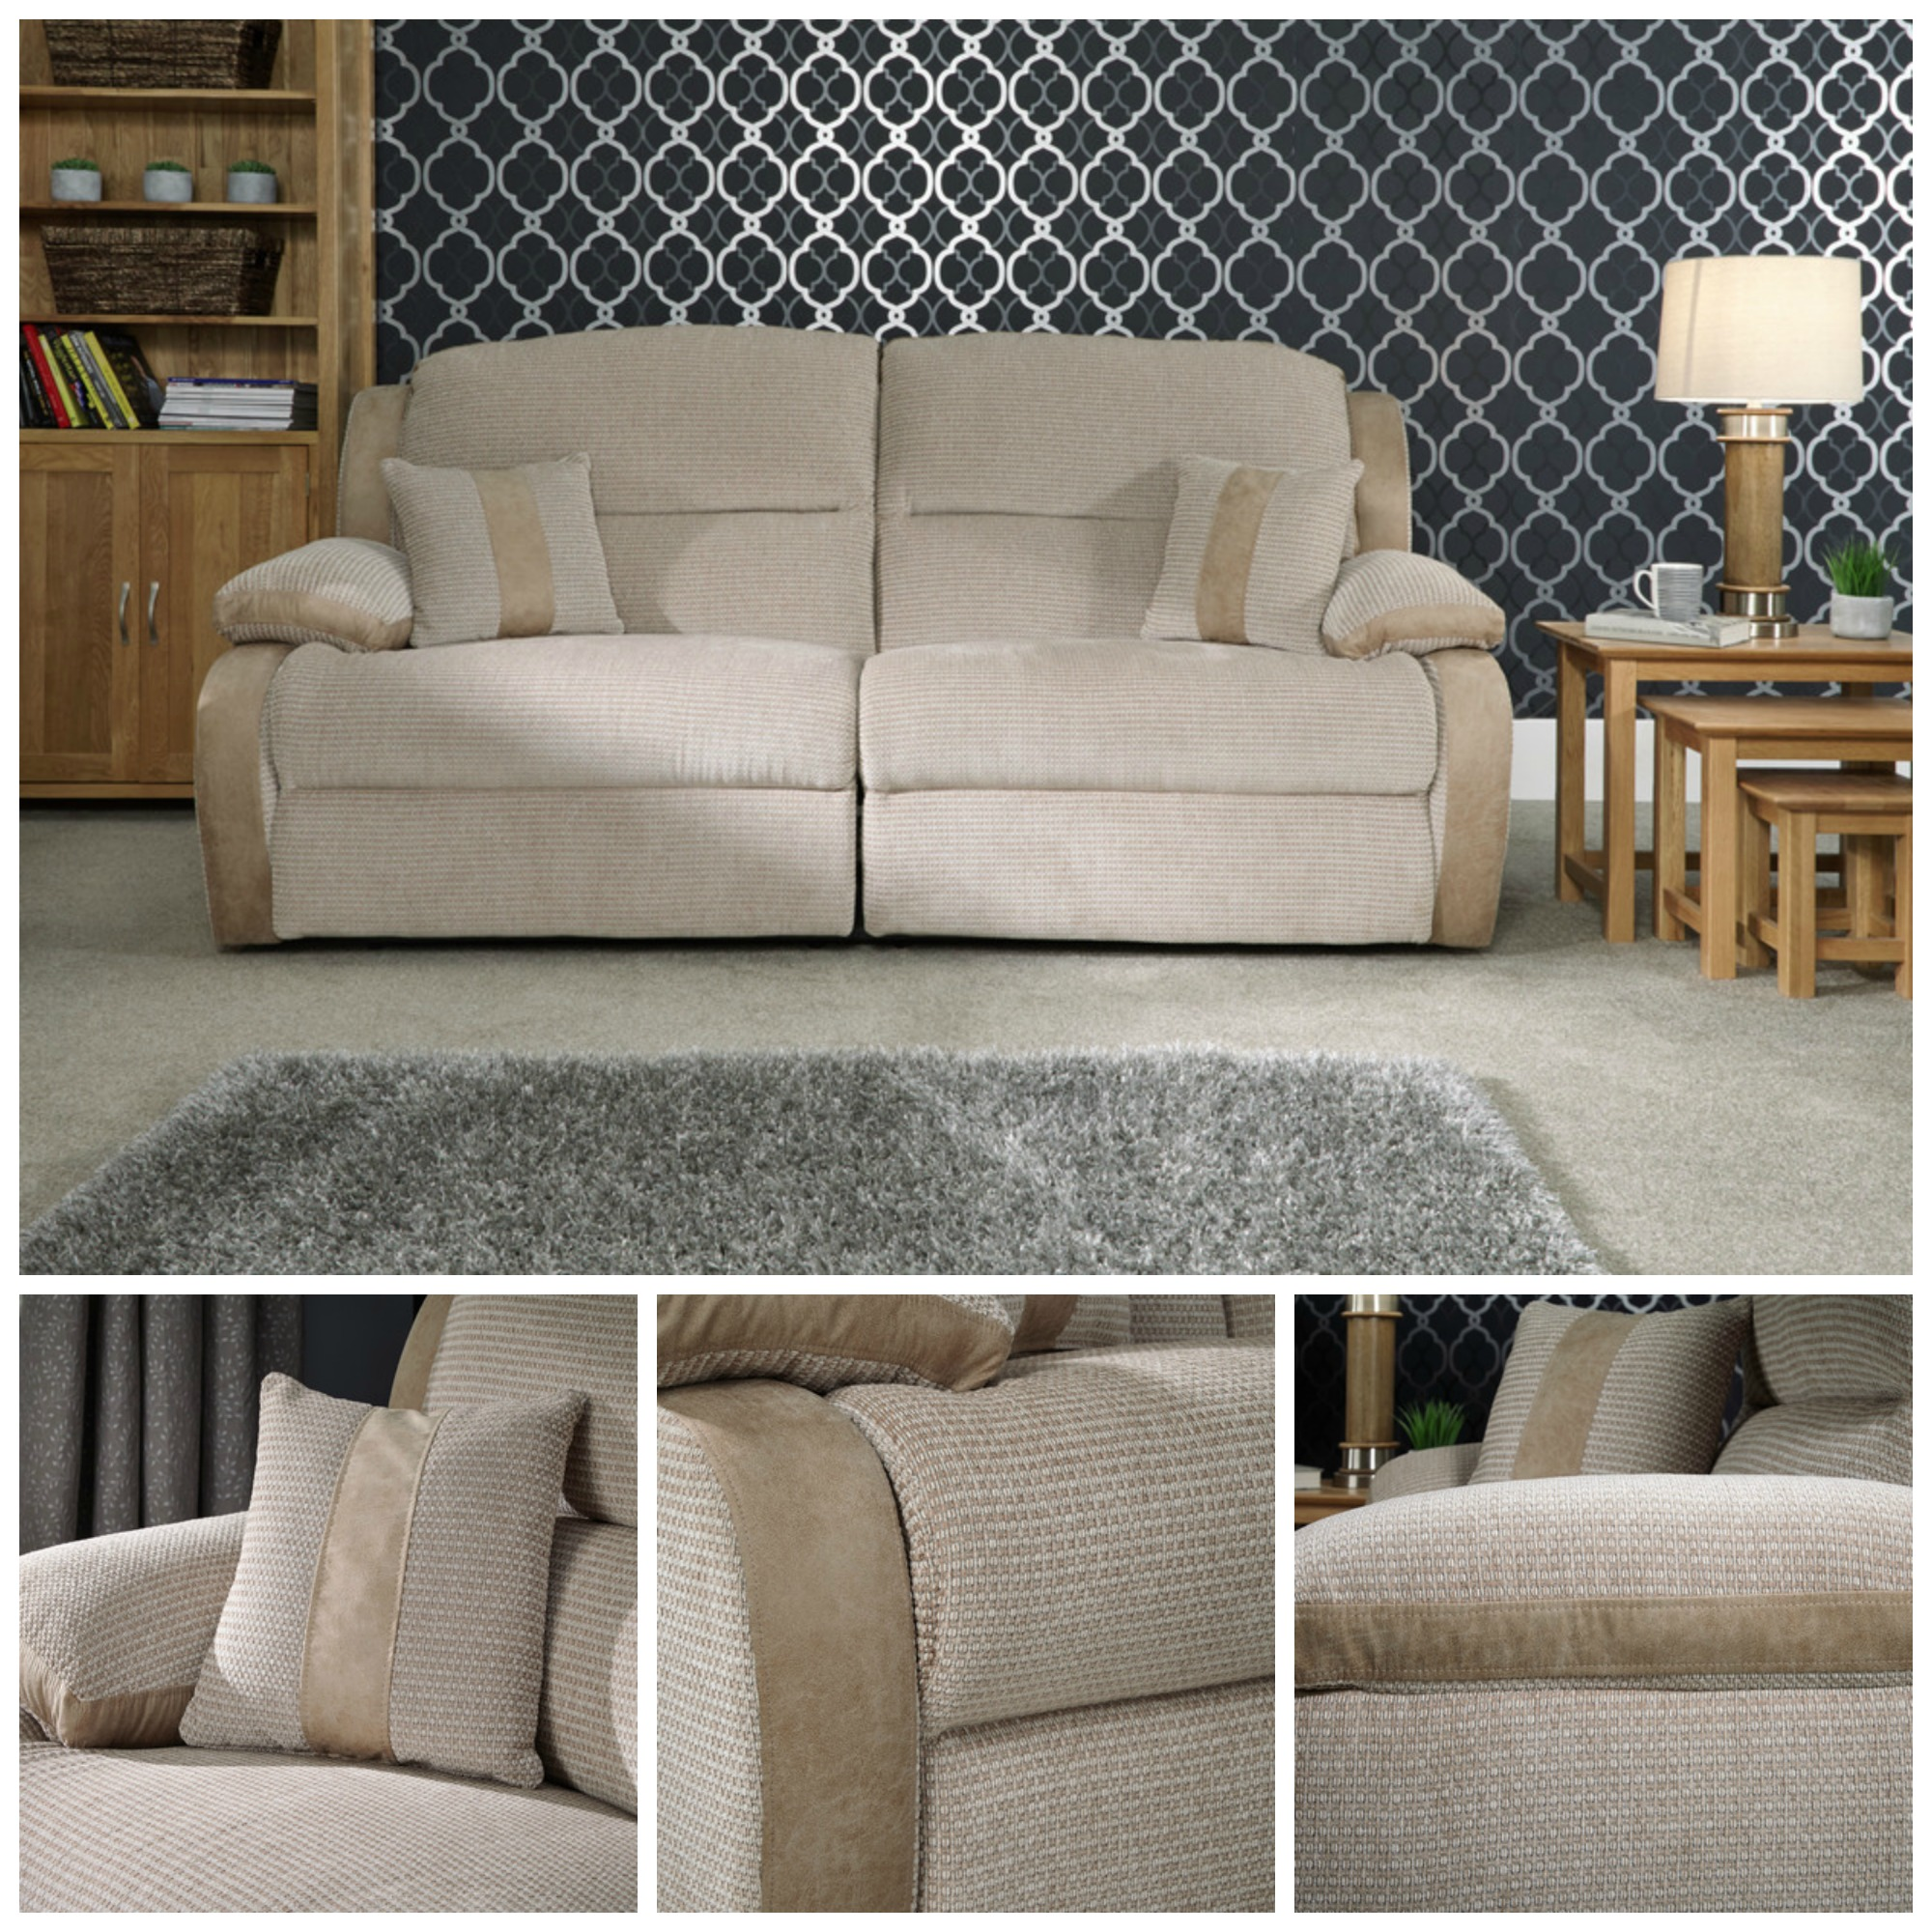 Marvin sofa collection